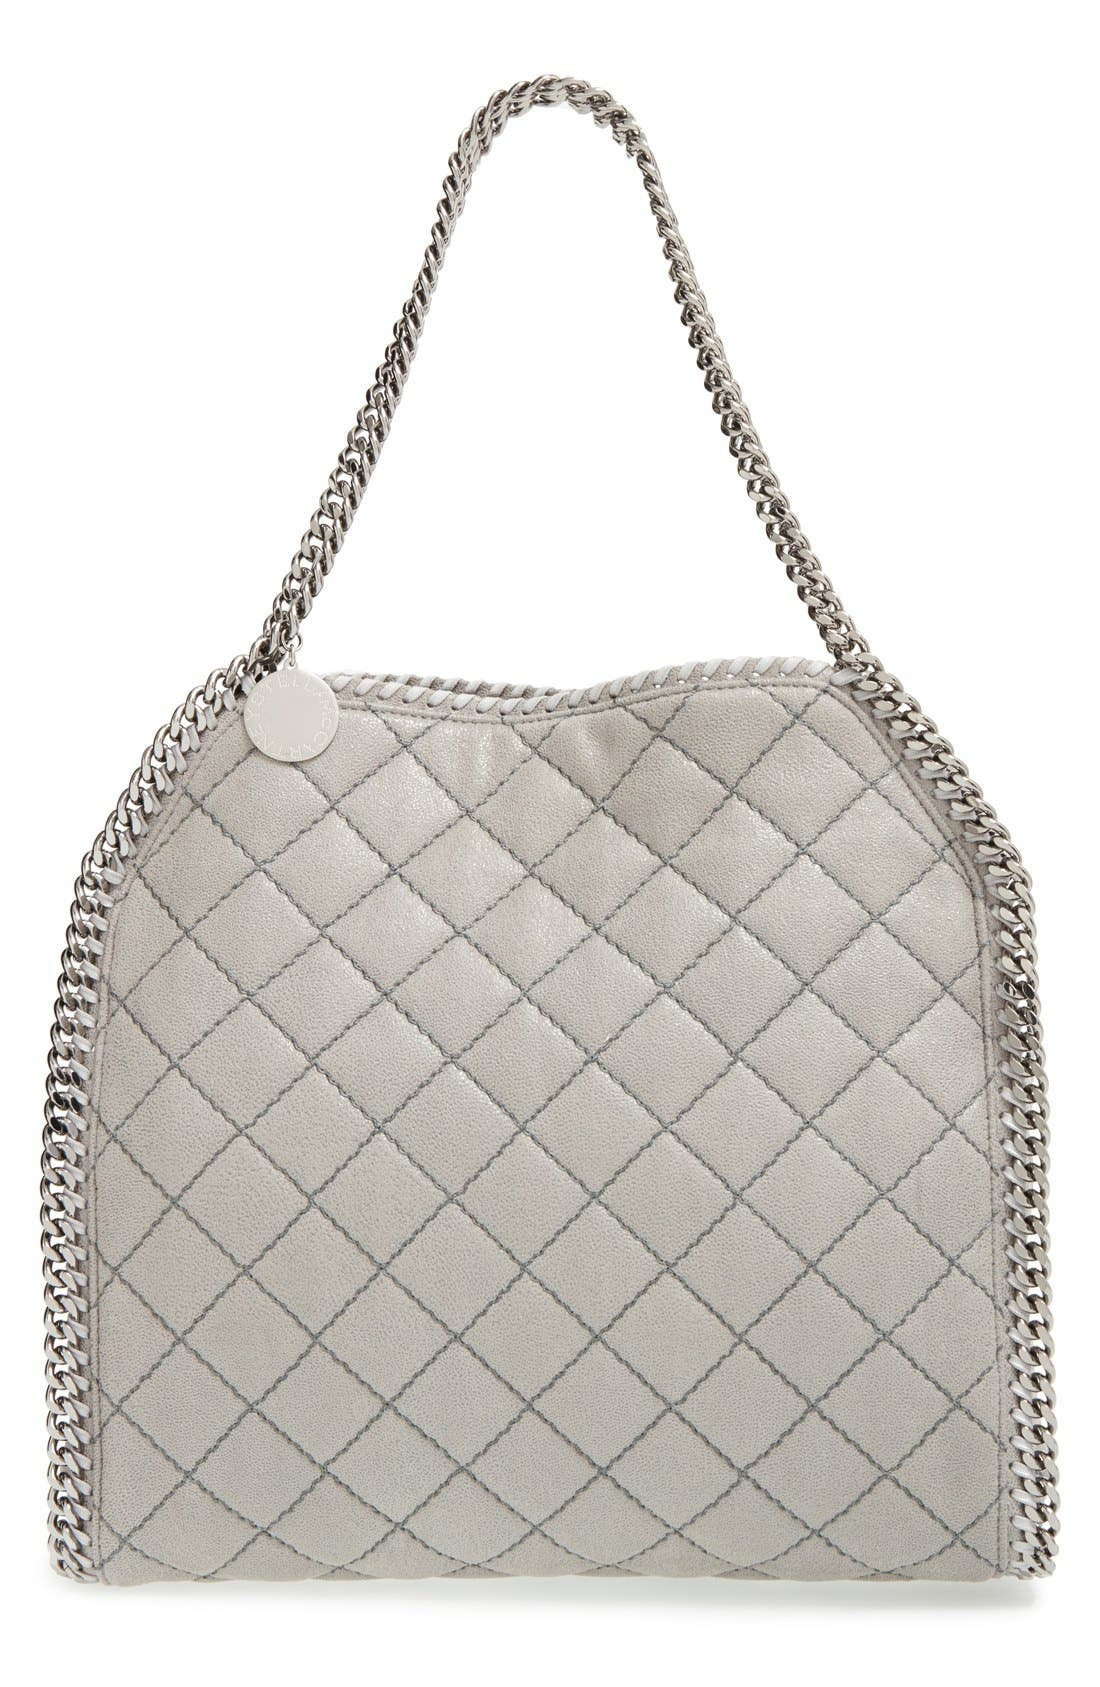 Stella McCartney 'Small Falabella' Quilted Faux Leather Tote